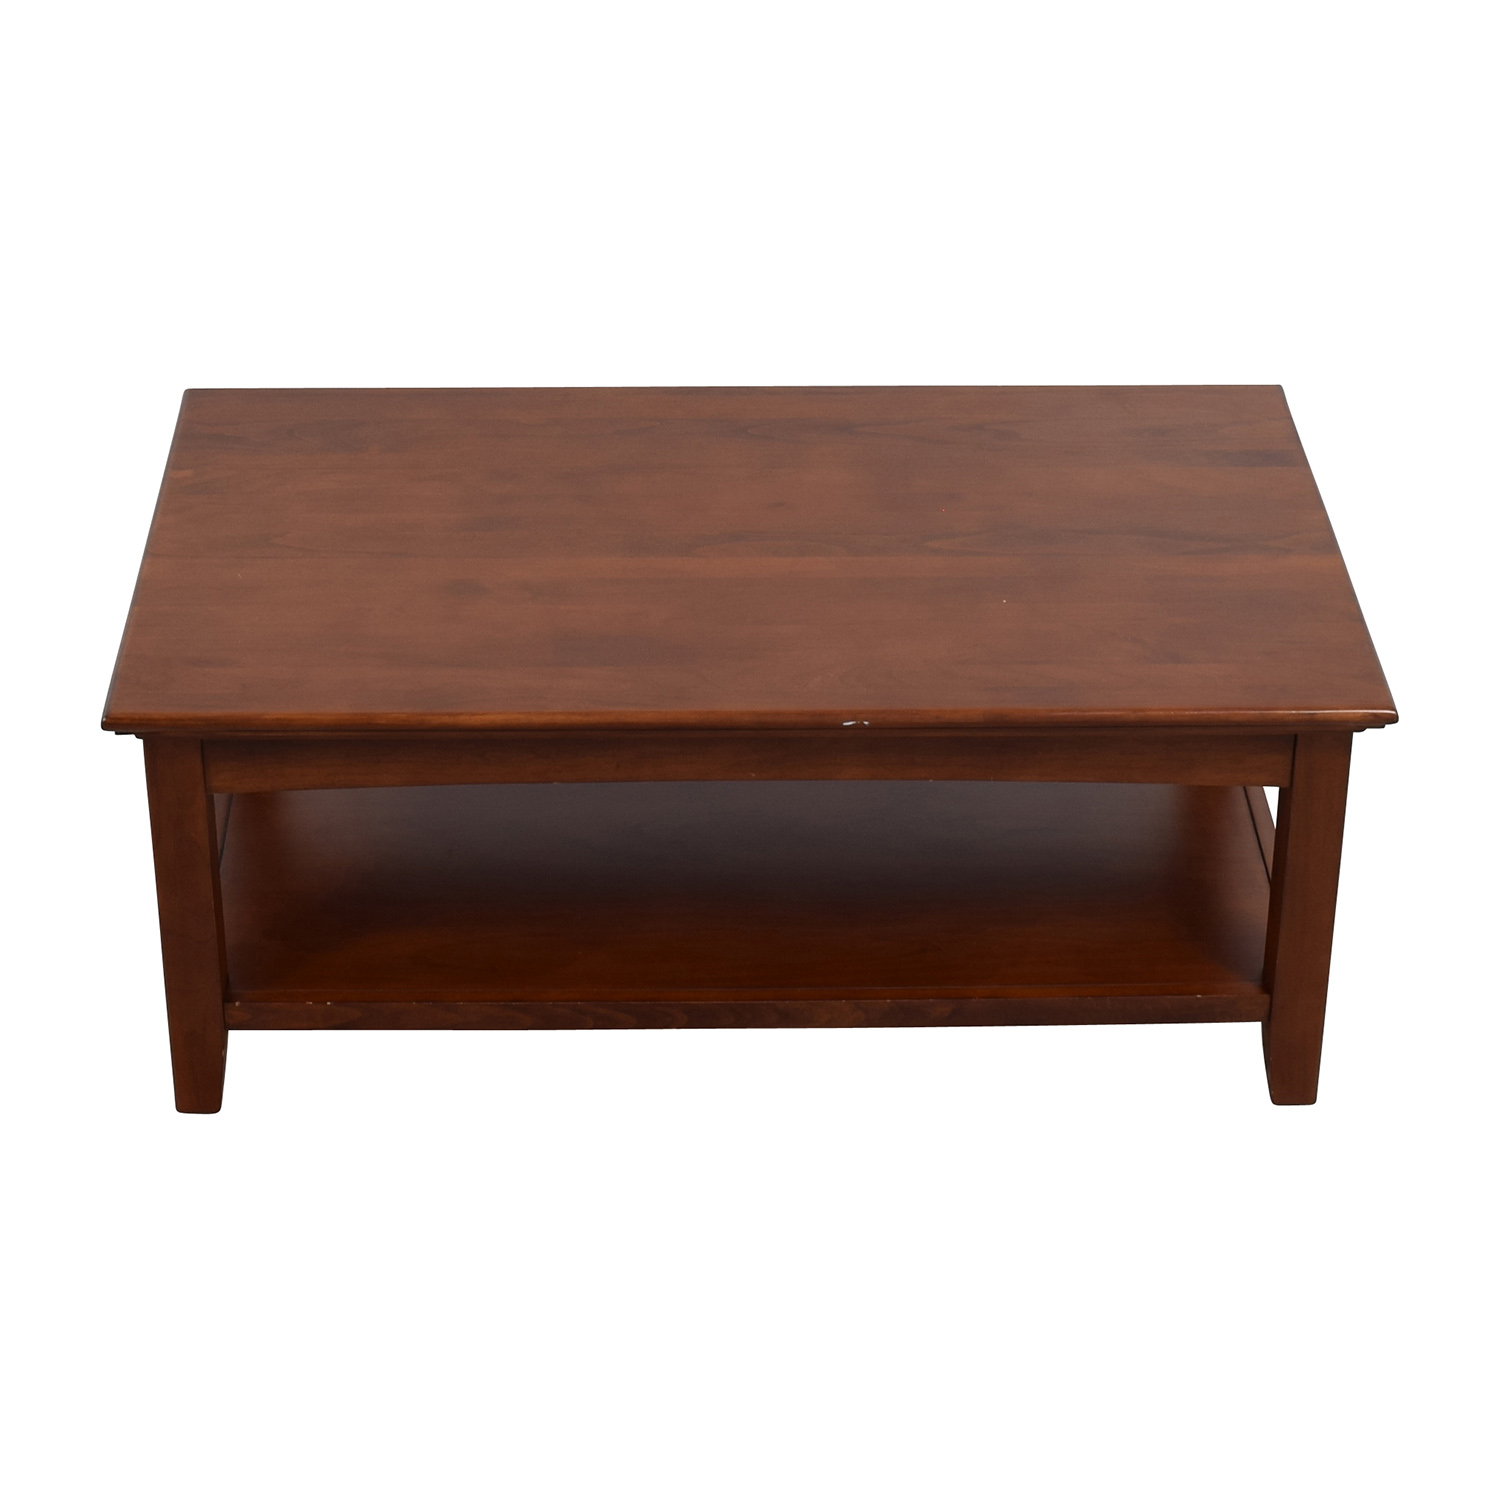 shop Whittier Wood Furniture Whittier Wood Furniture GAC McKenzie Cocktail Table online